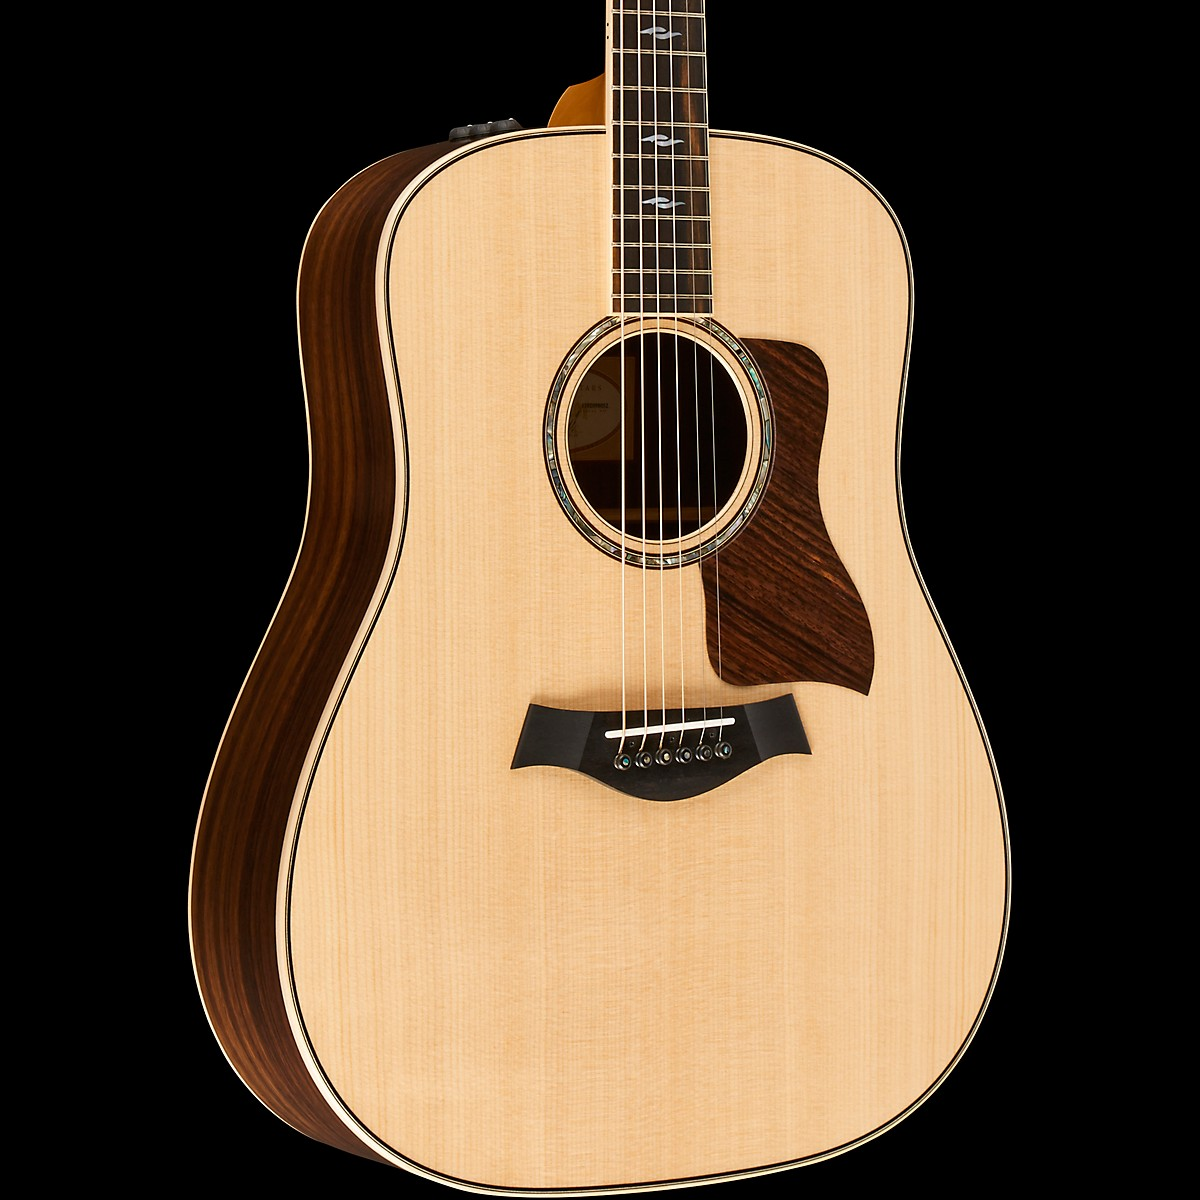 Taylor 810e Dreadnought Acoustic-Electric Guitar